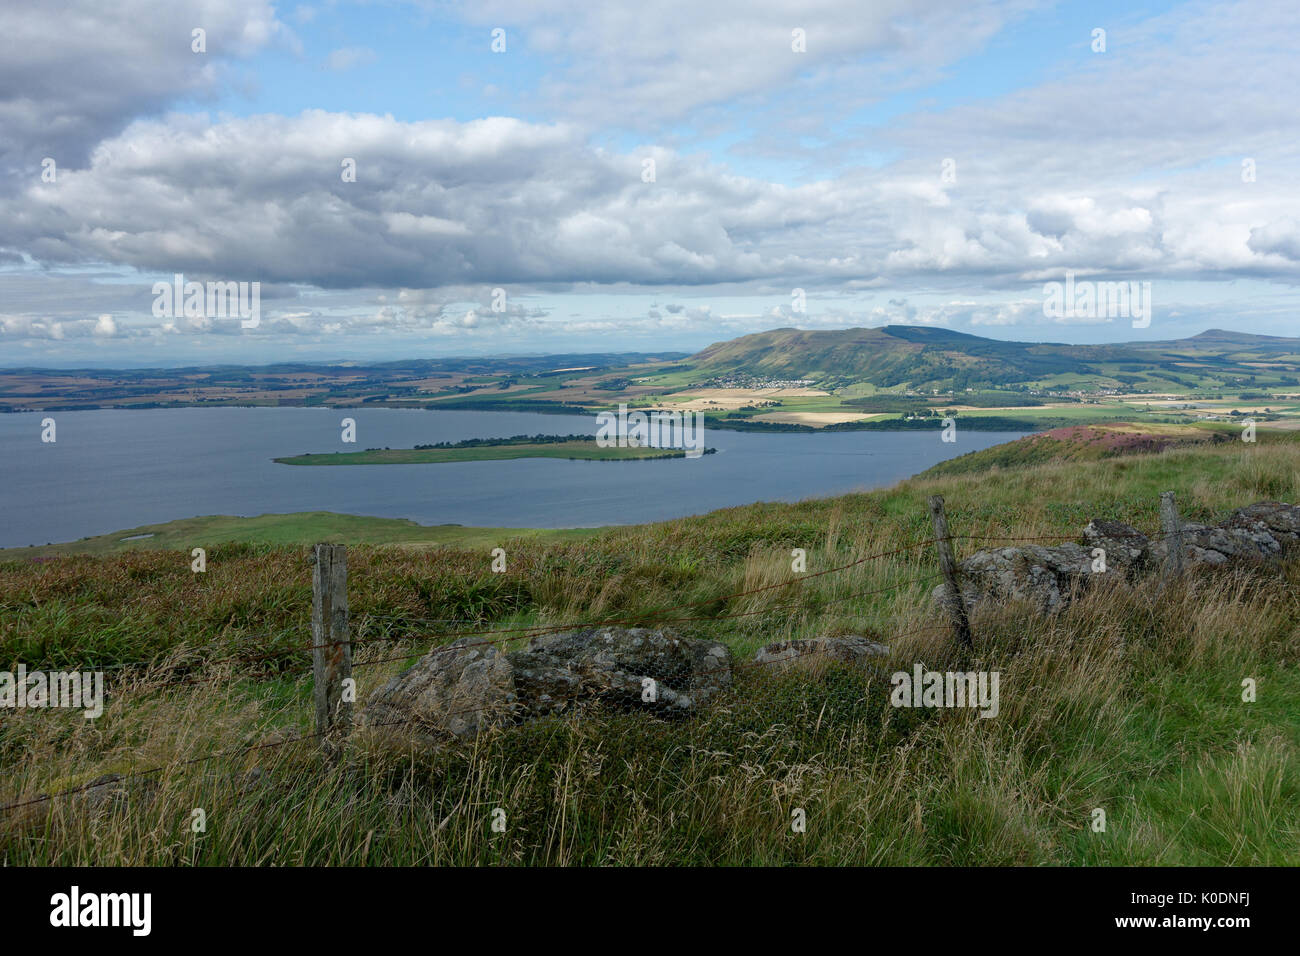 A view of Loch Leven from Benarty Hill, near Ballingry, Fife, Scotland. - Stock Image